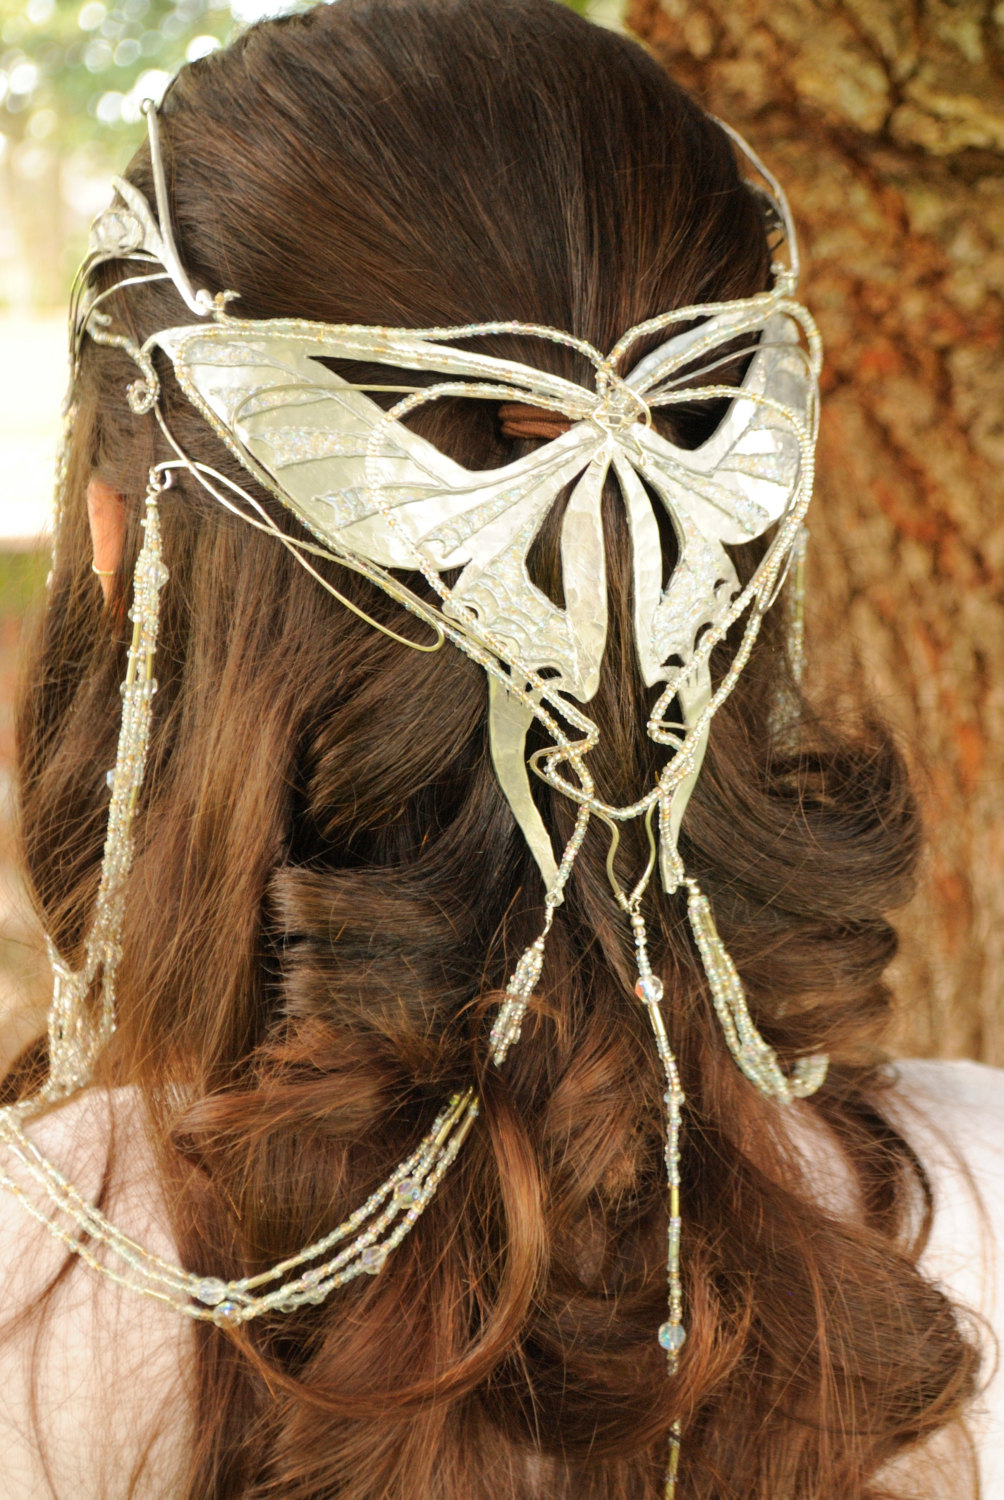 Lord of the rings arwen coronation butterfly crown replica custom order